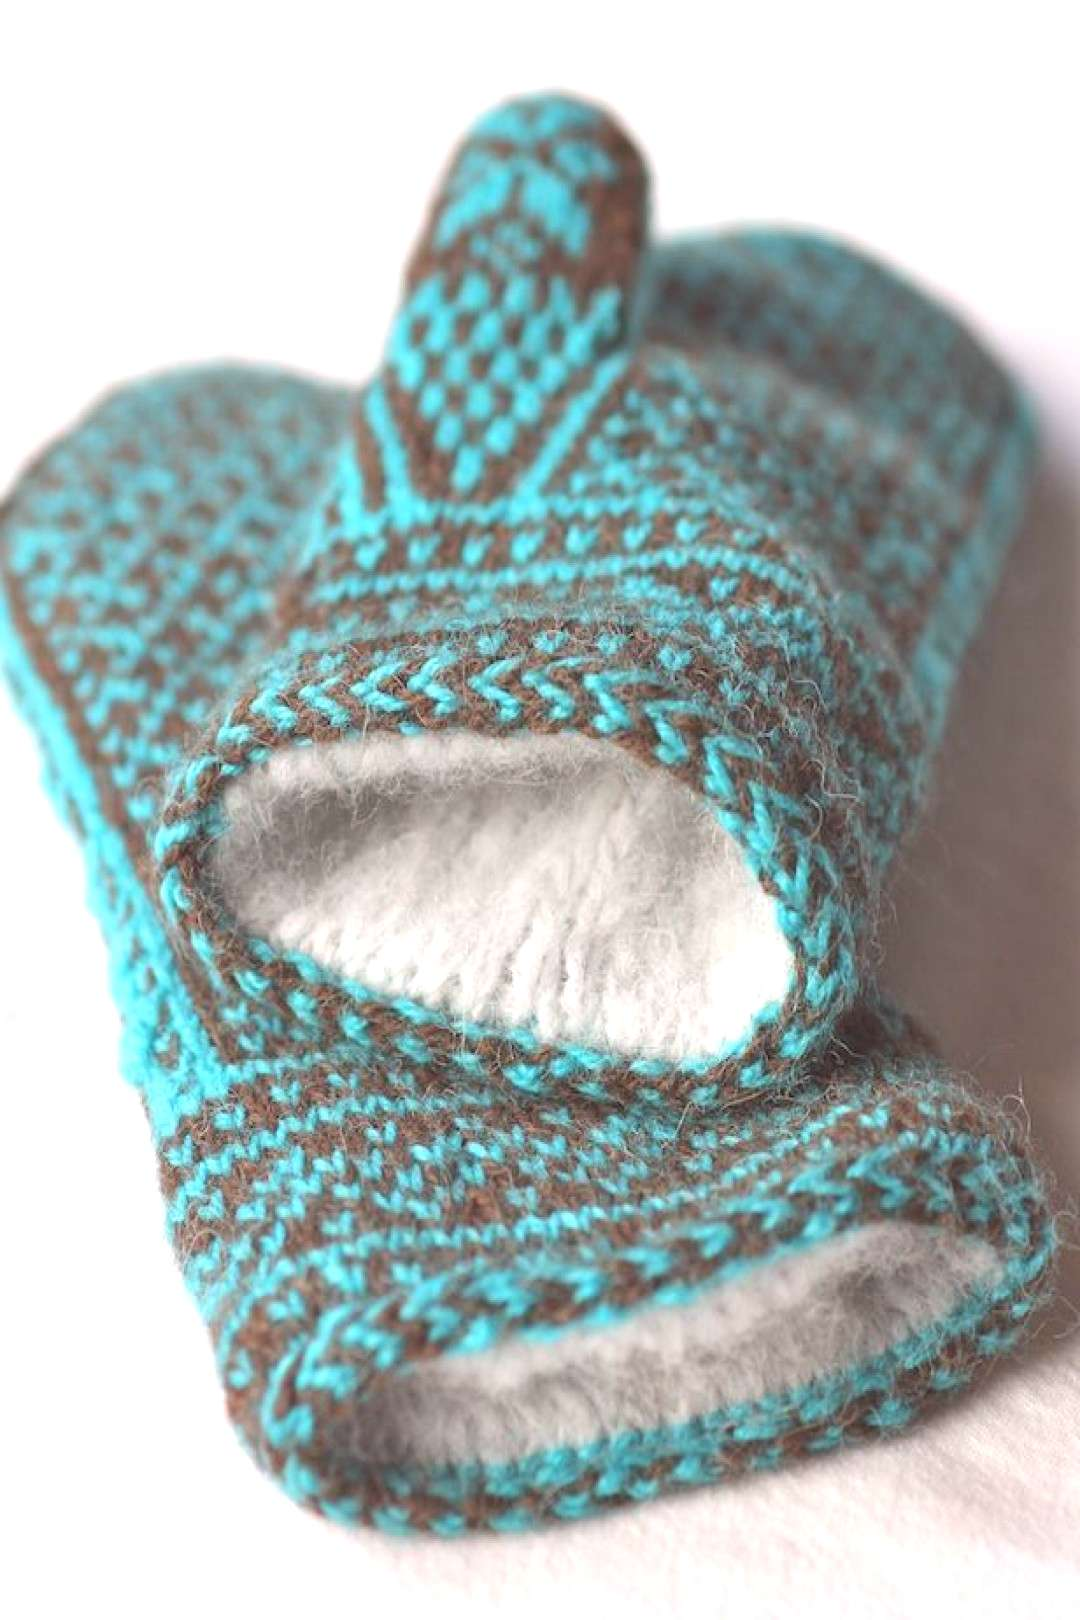 Northman Mittens,Doubled mitten. Knit 2 mittens of different colors, stitch together at openi... No